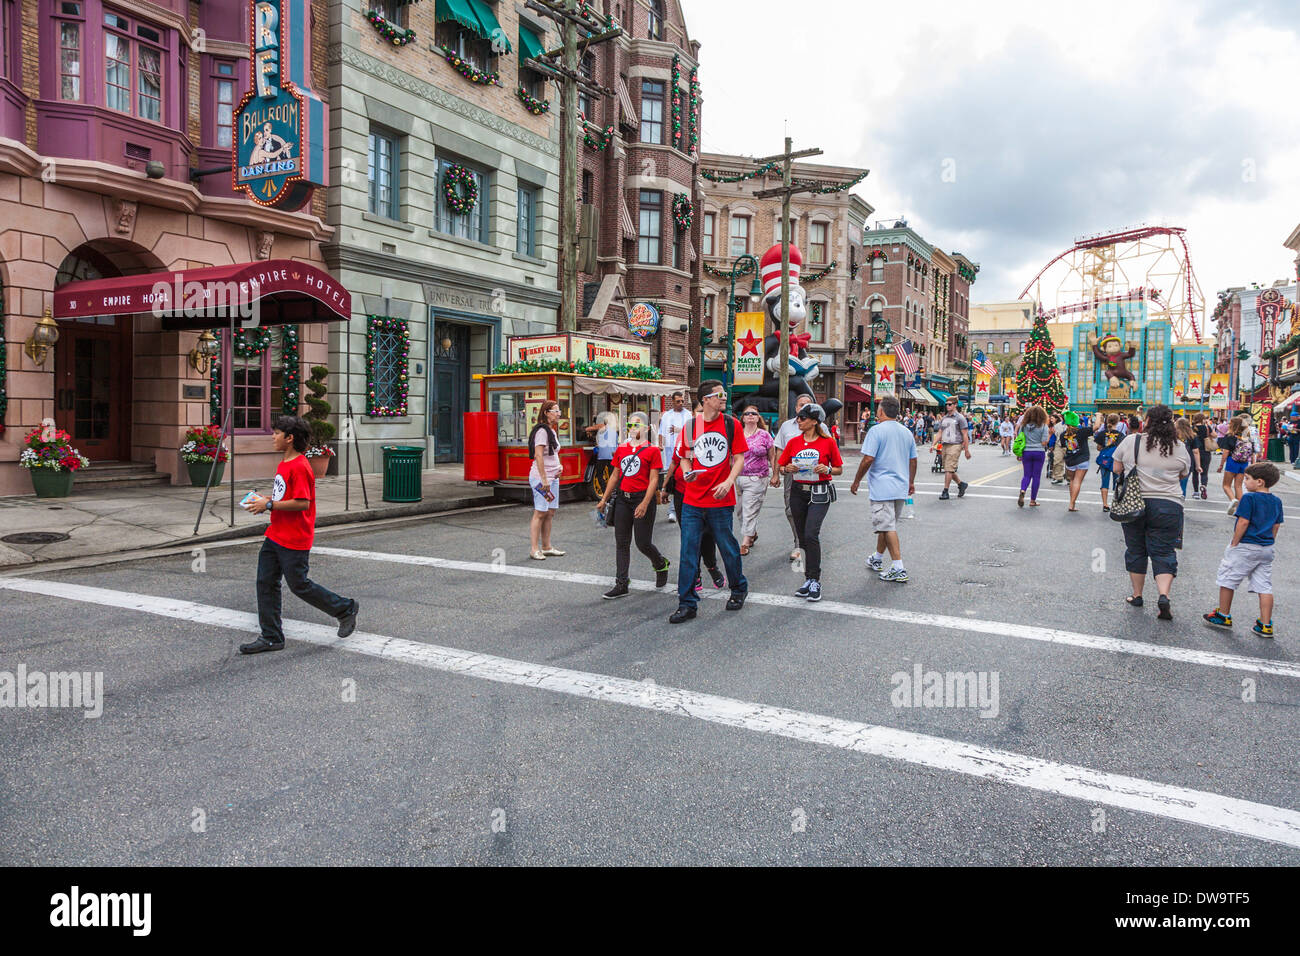 Family wearing Thing T-shirts on the street at Universal Studios theme park in Orlando, Florida - Stock Image